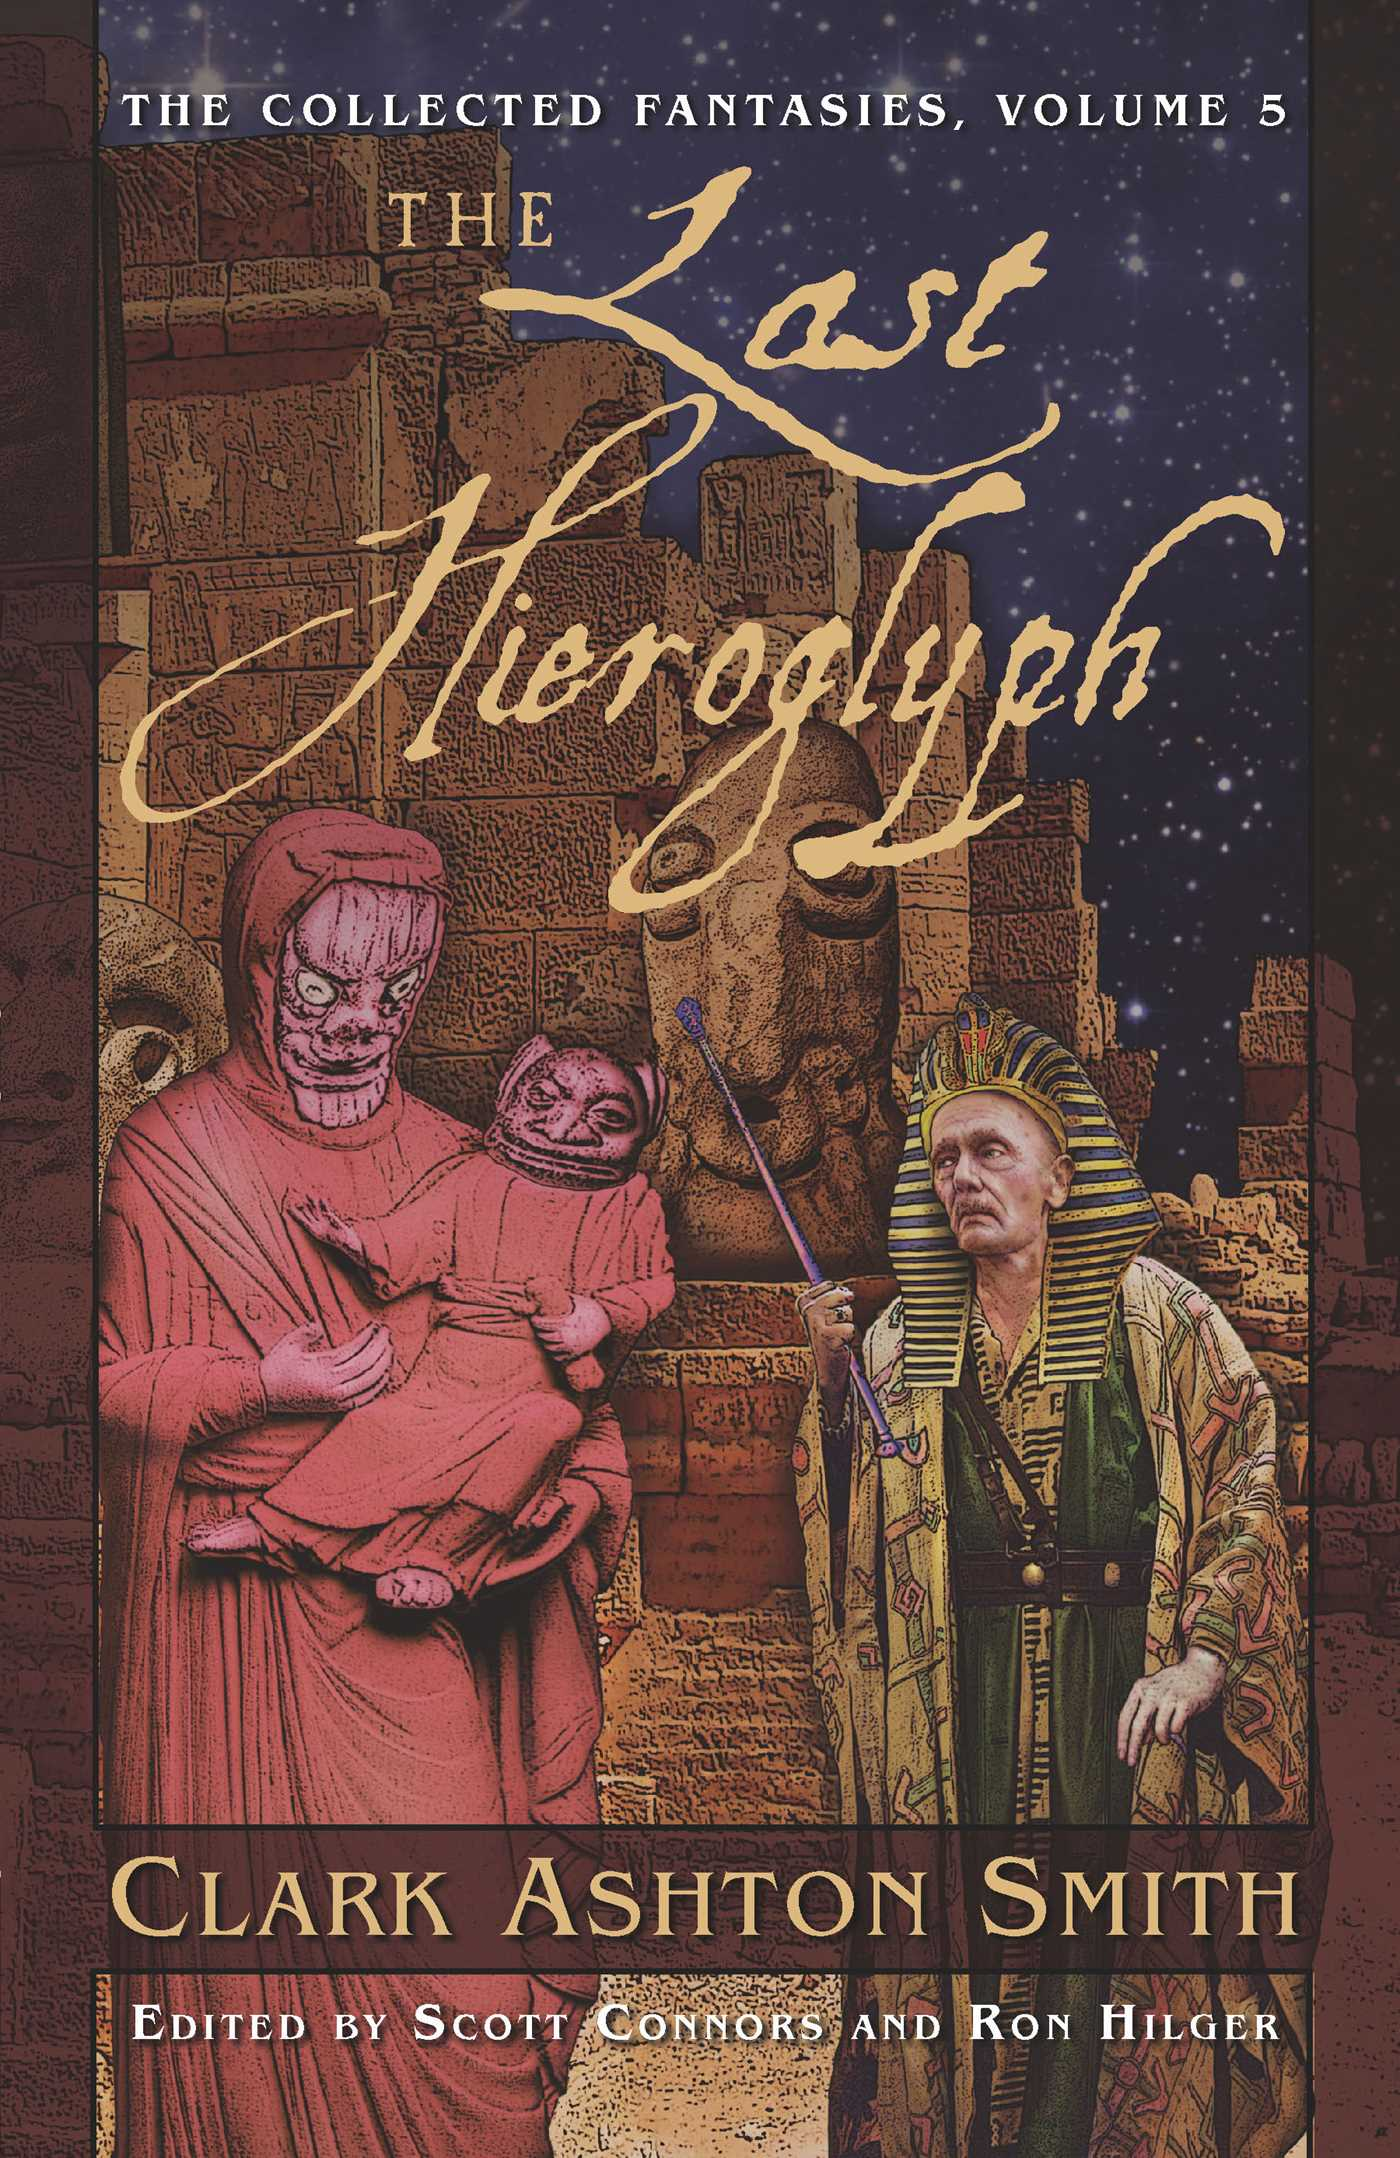 Collected Fantasies of Clark Ashton Smith Volume 5: The Last Hieroglyph